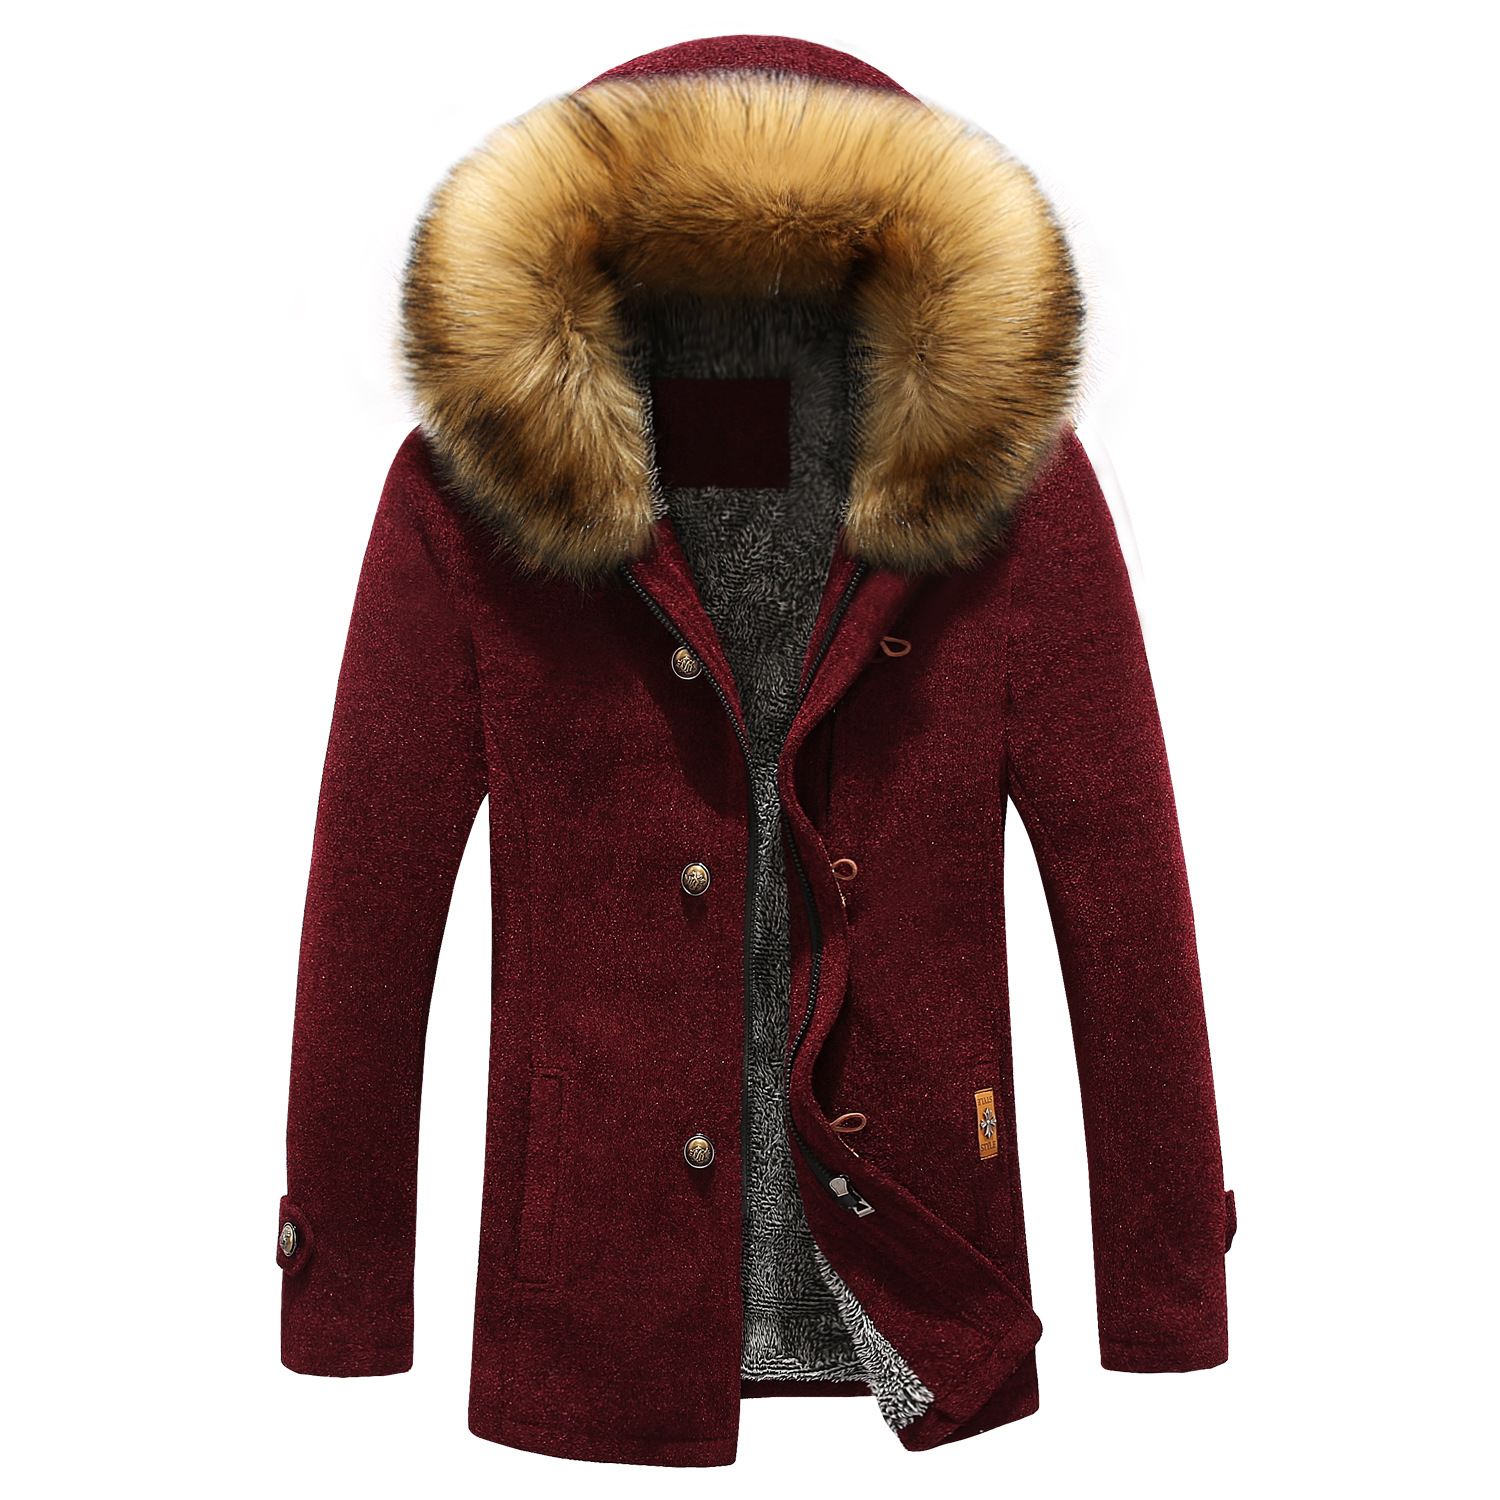 Men Fashion Parkas Winter Thick Warm Men s Jacket and Coats Casual Hooded Long Coat Outwears